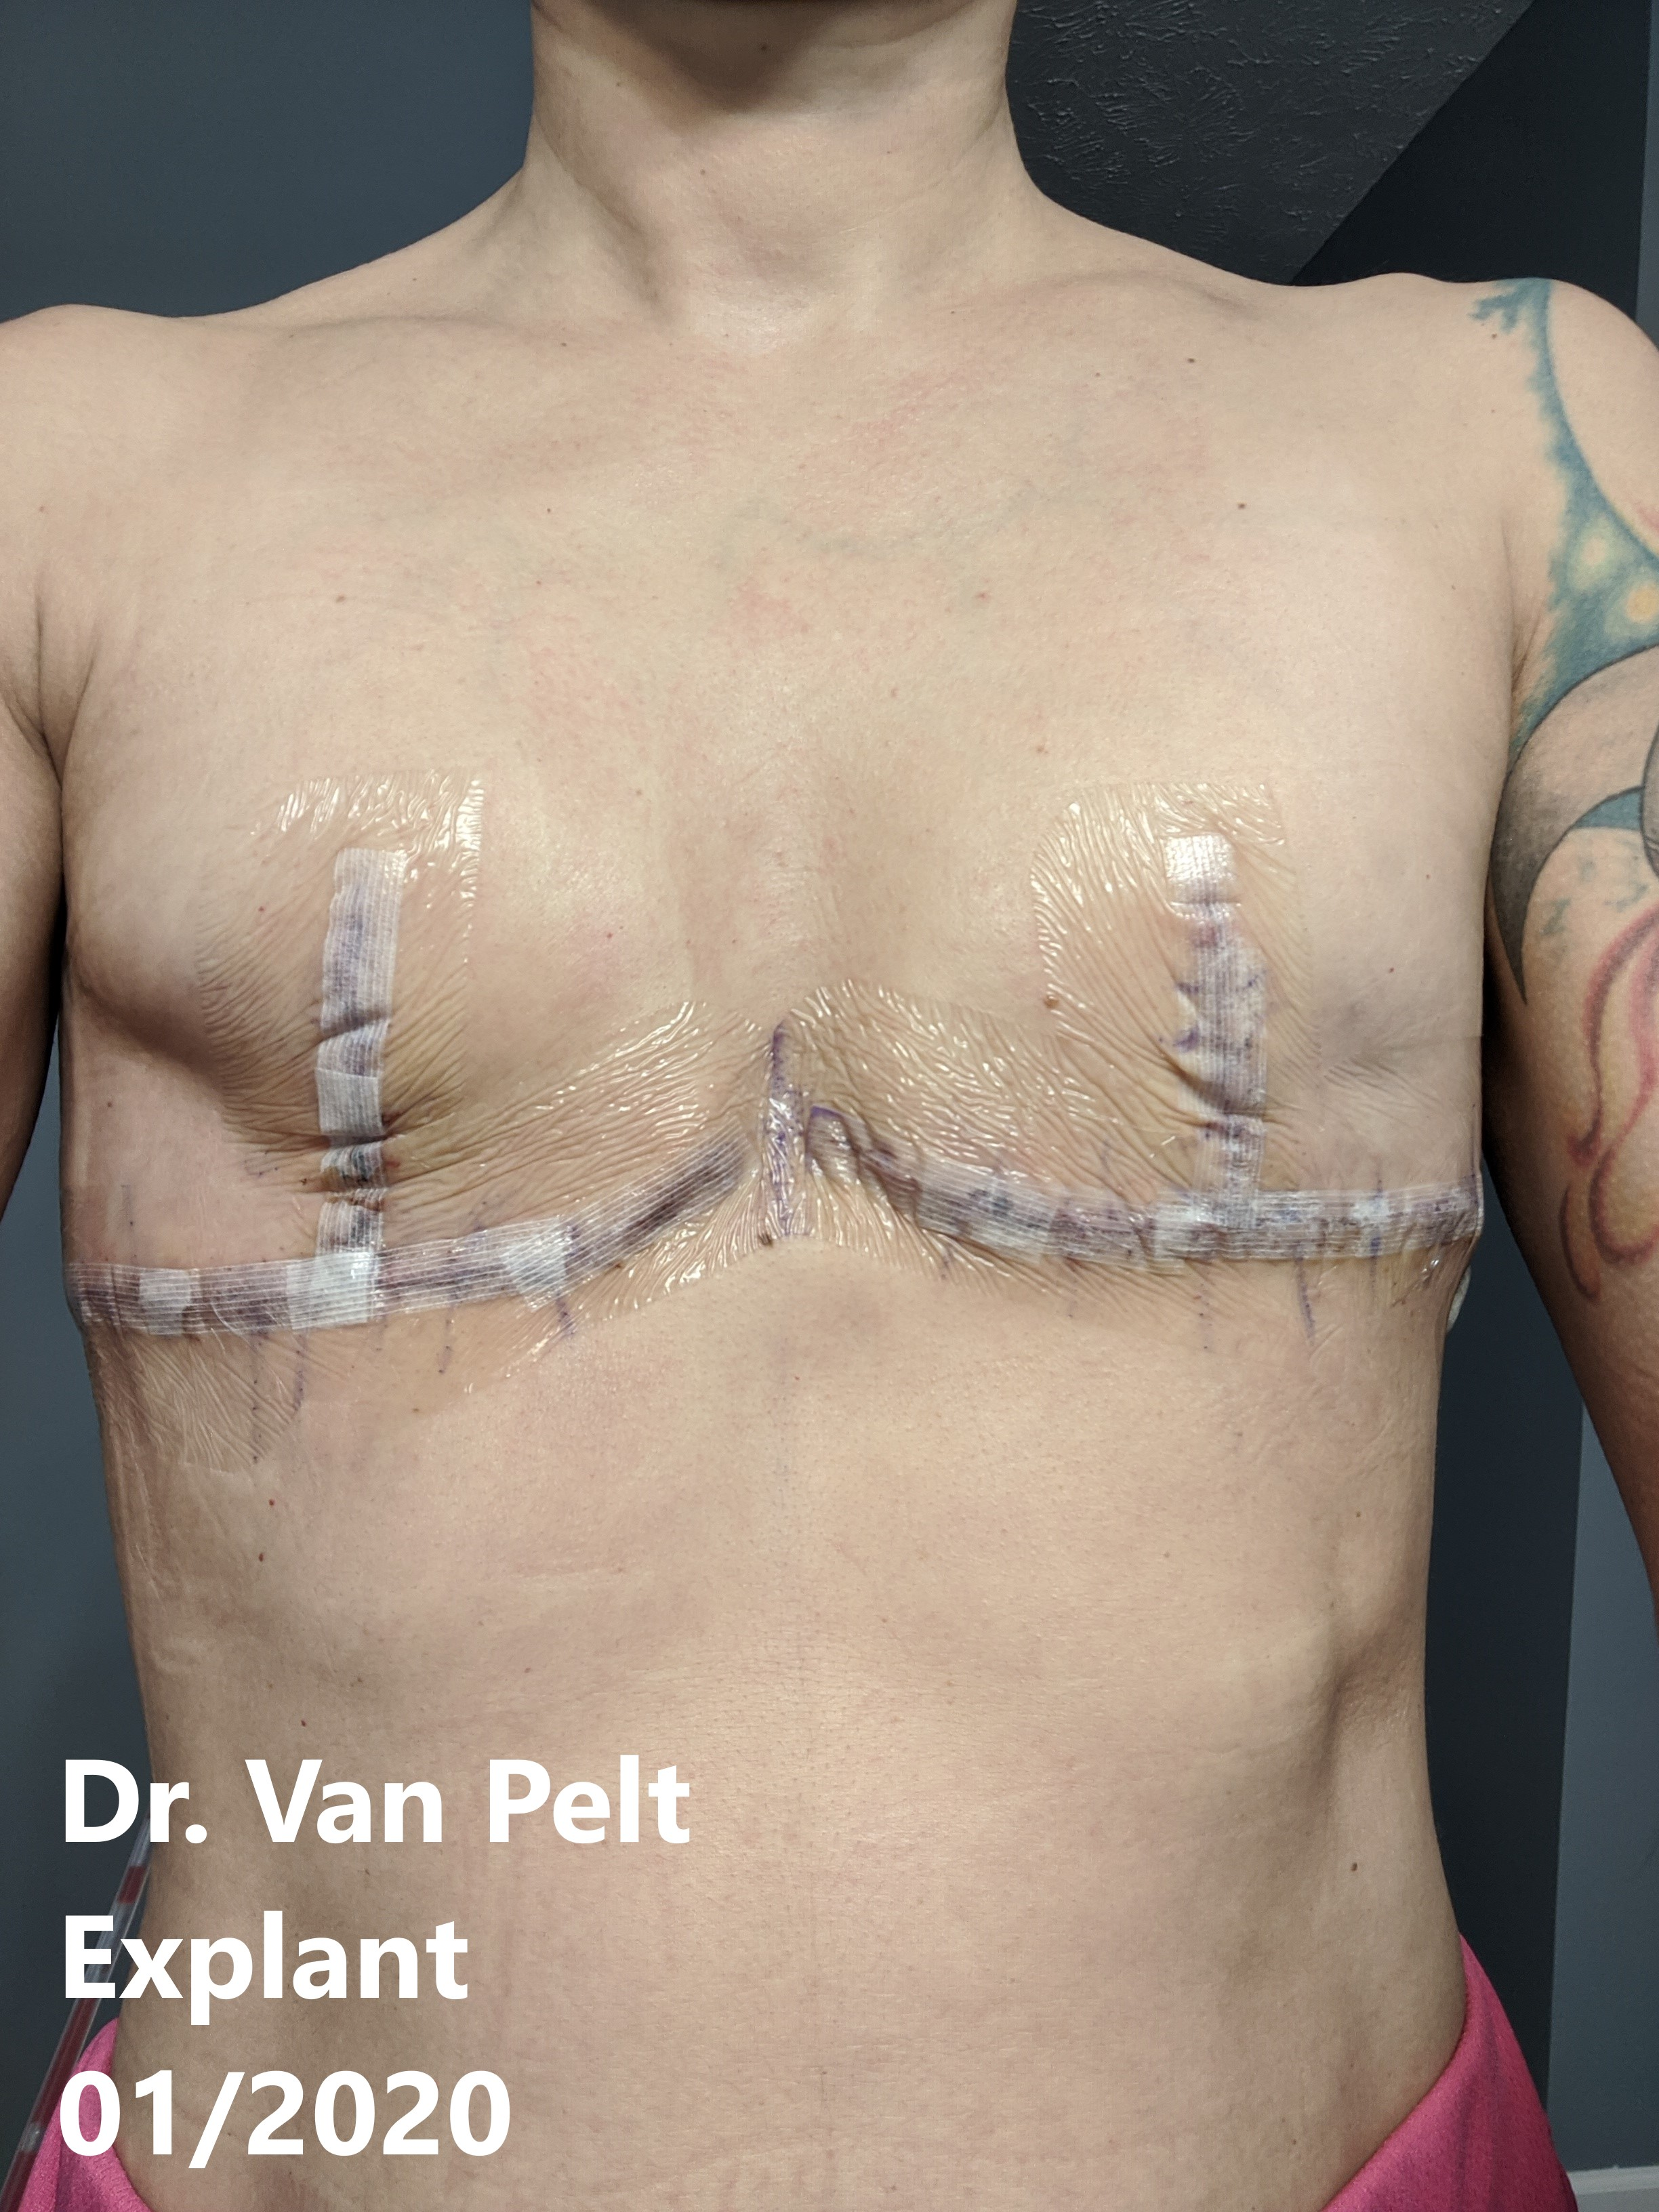 going flat photos aesthetic flat closure after explant breast implant removal mastectomy smooth flat chest